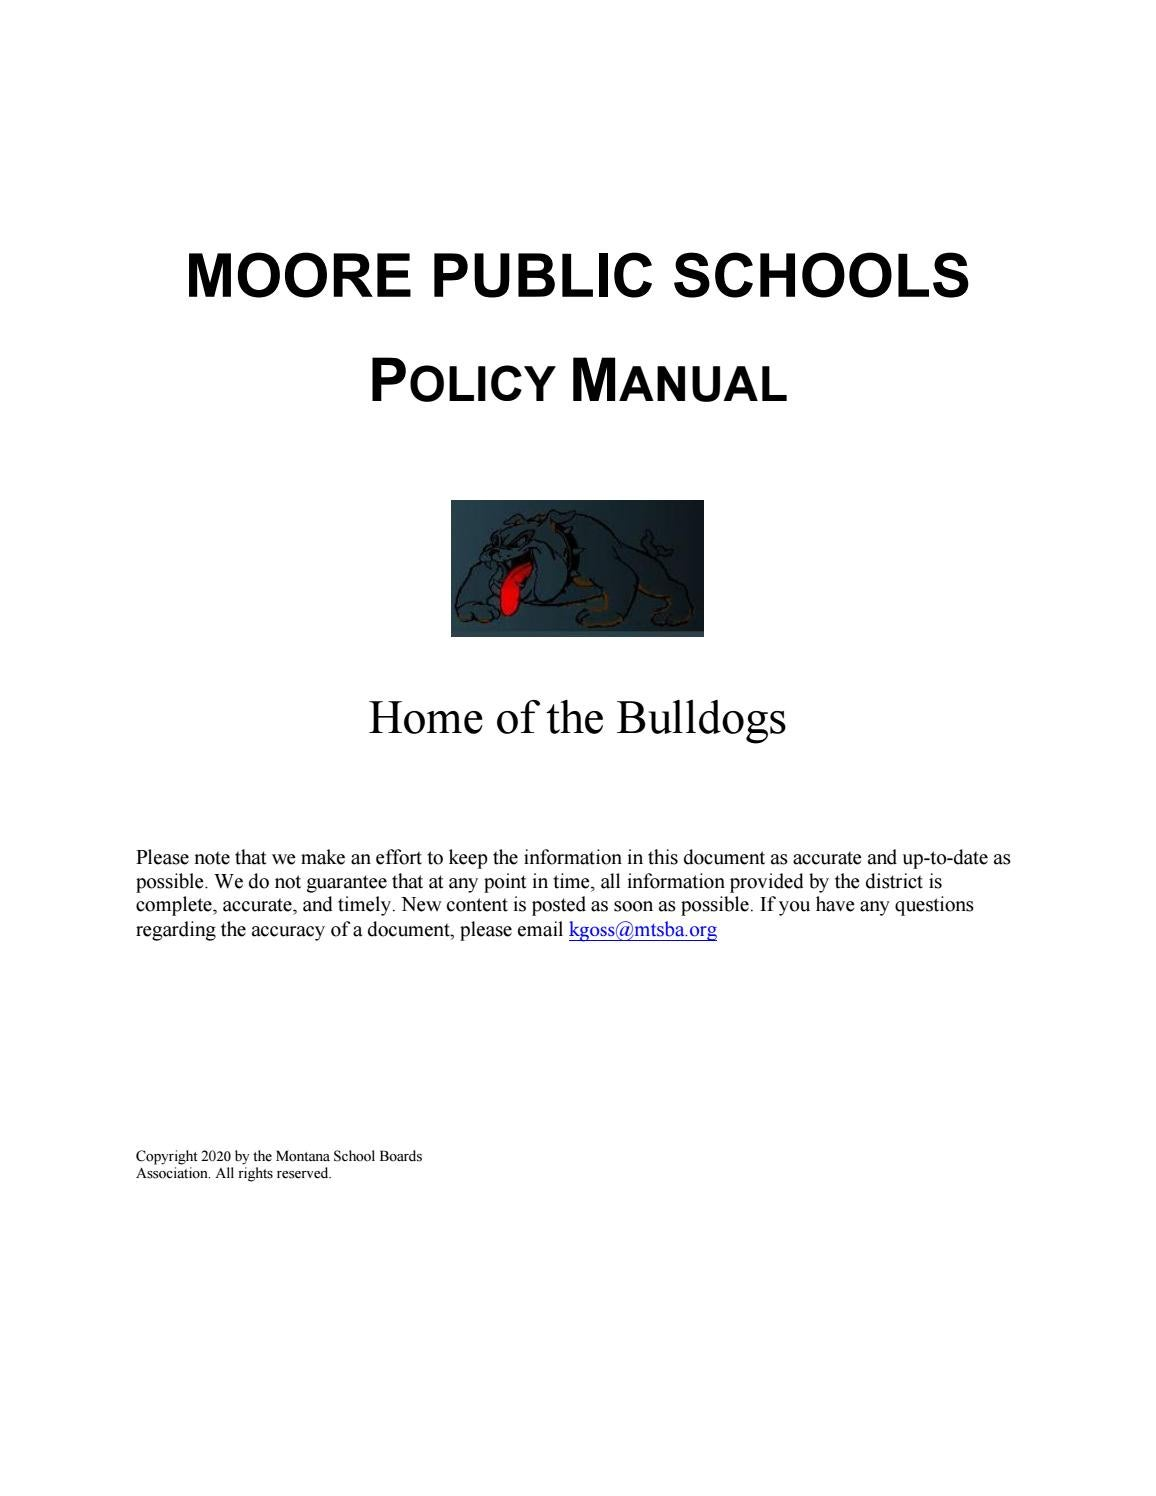 Moore Public Schools Policy Manual By Montana School Boards Association Issuu